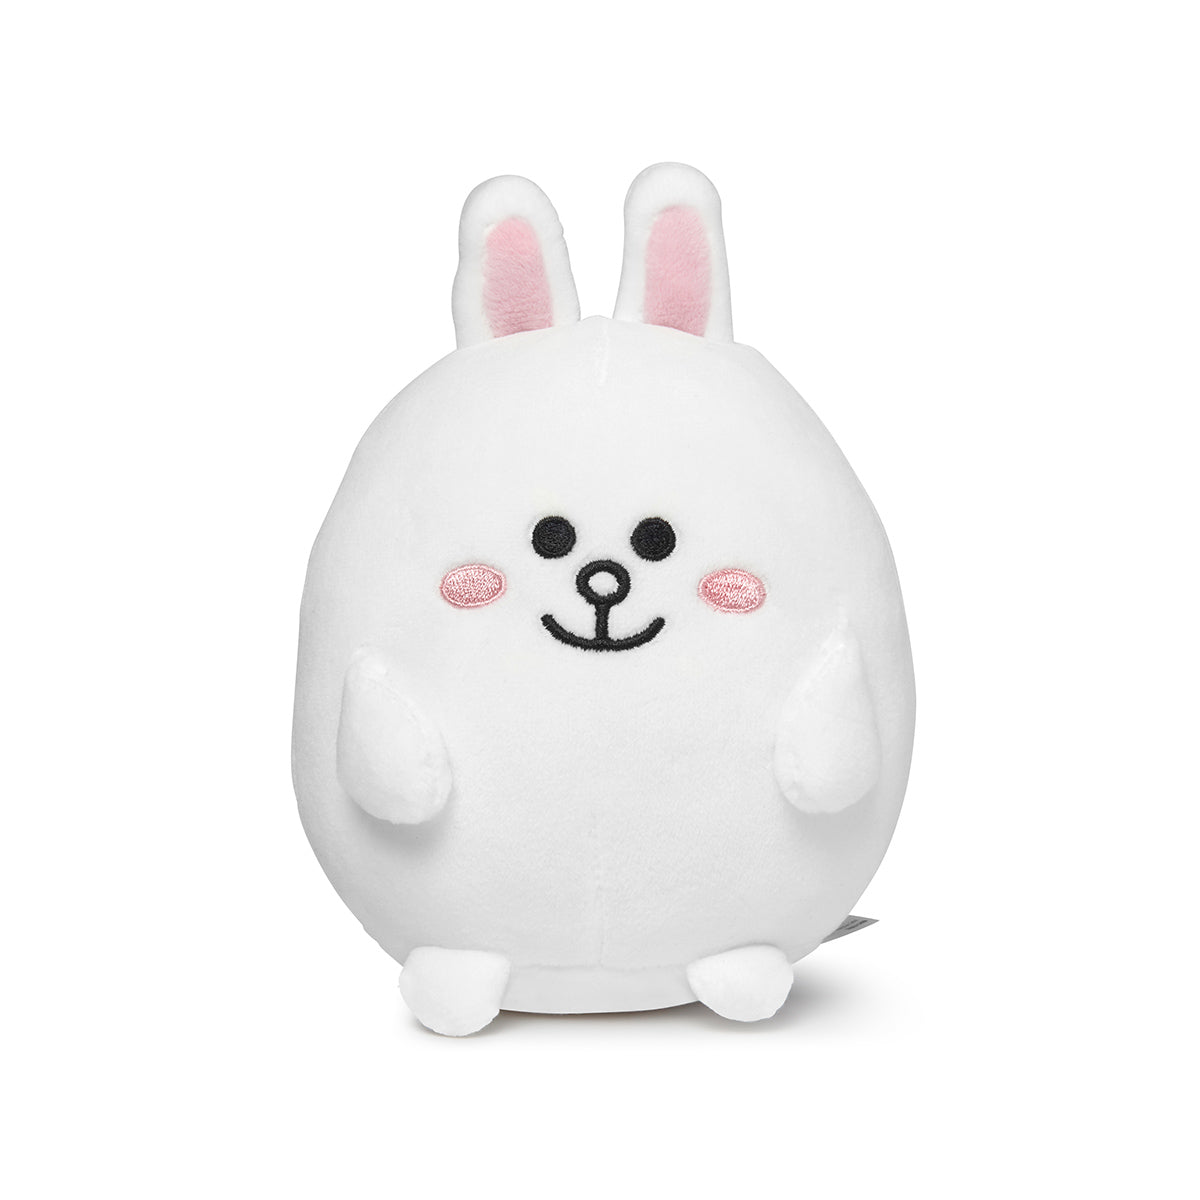 CONY Pong Pong Standing Plush Figure